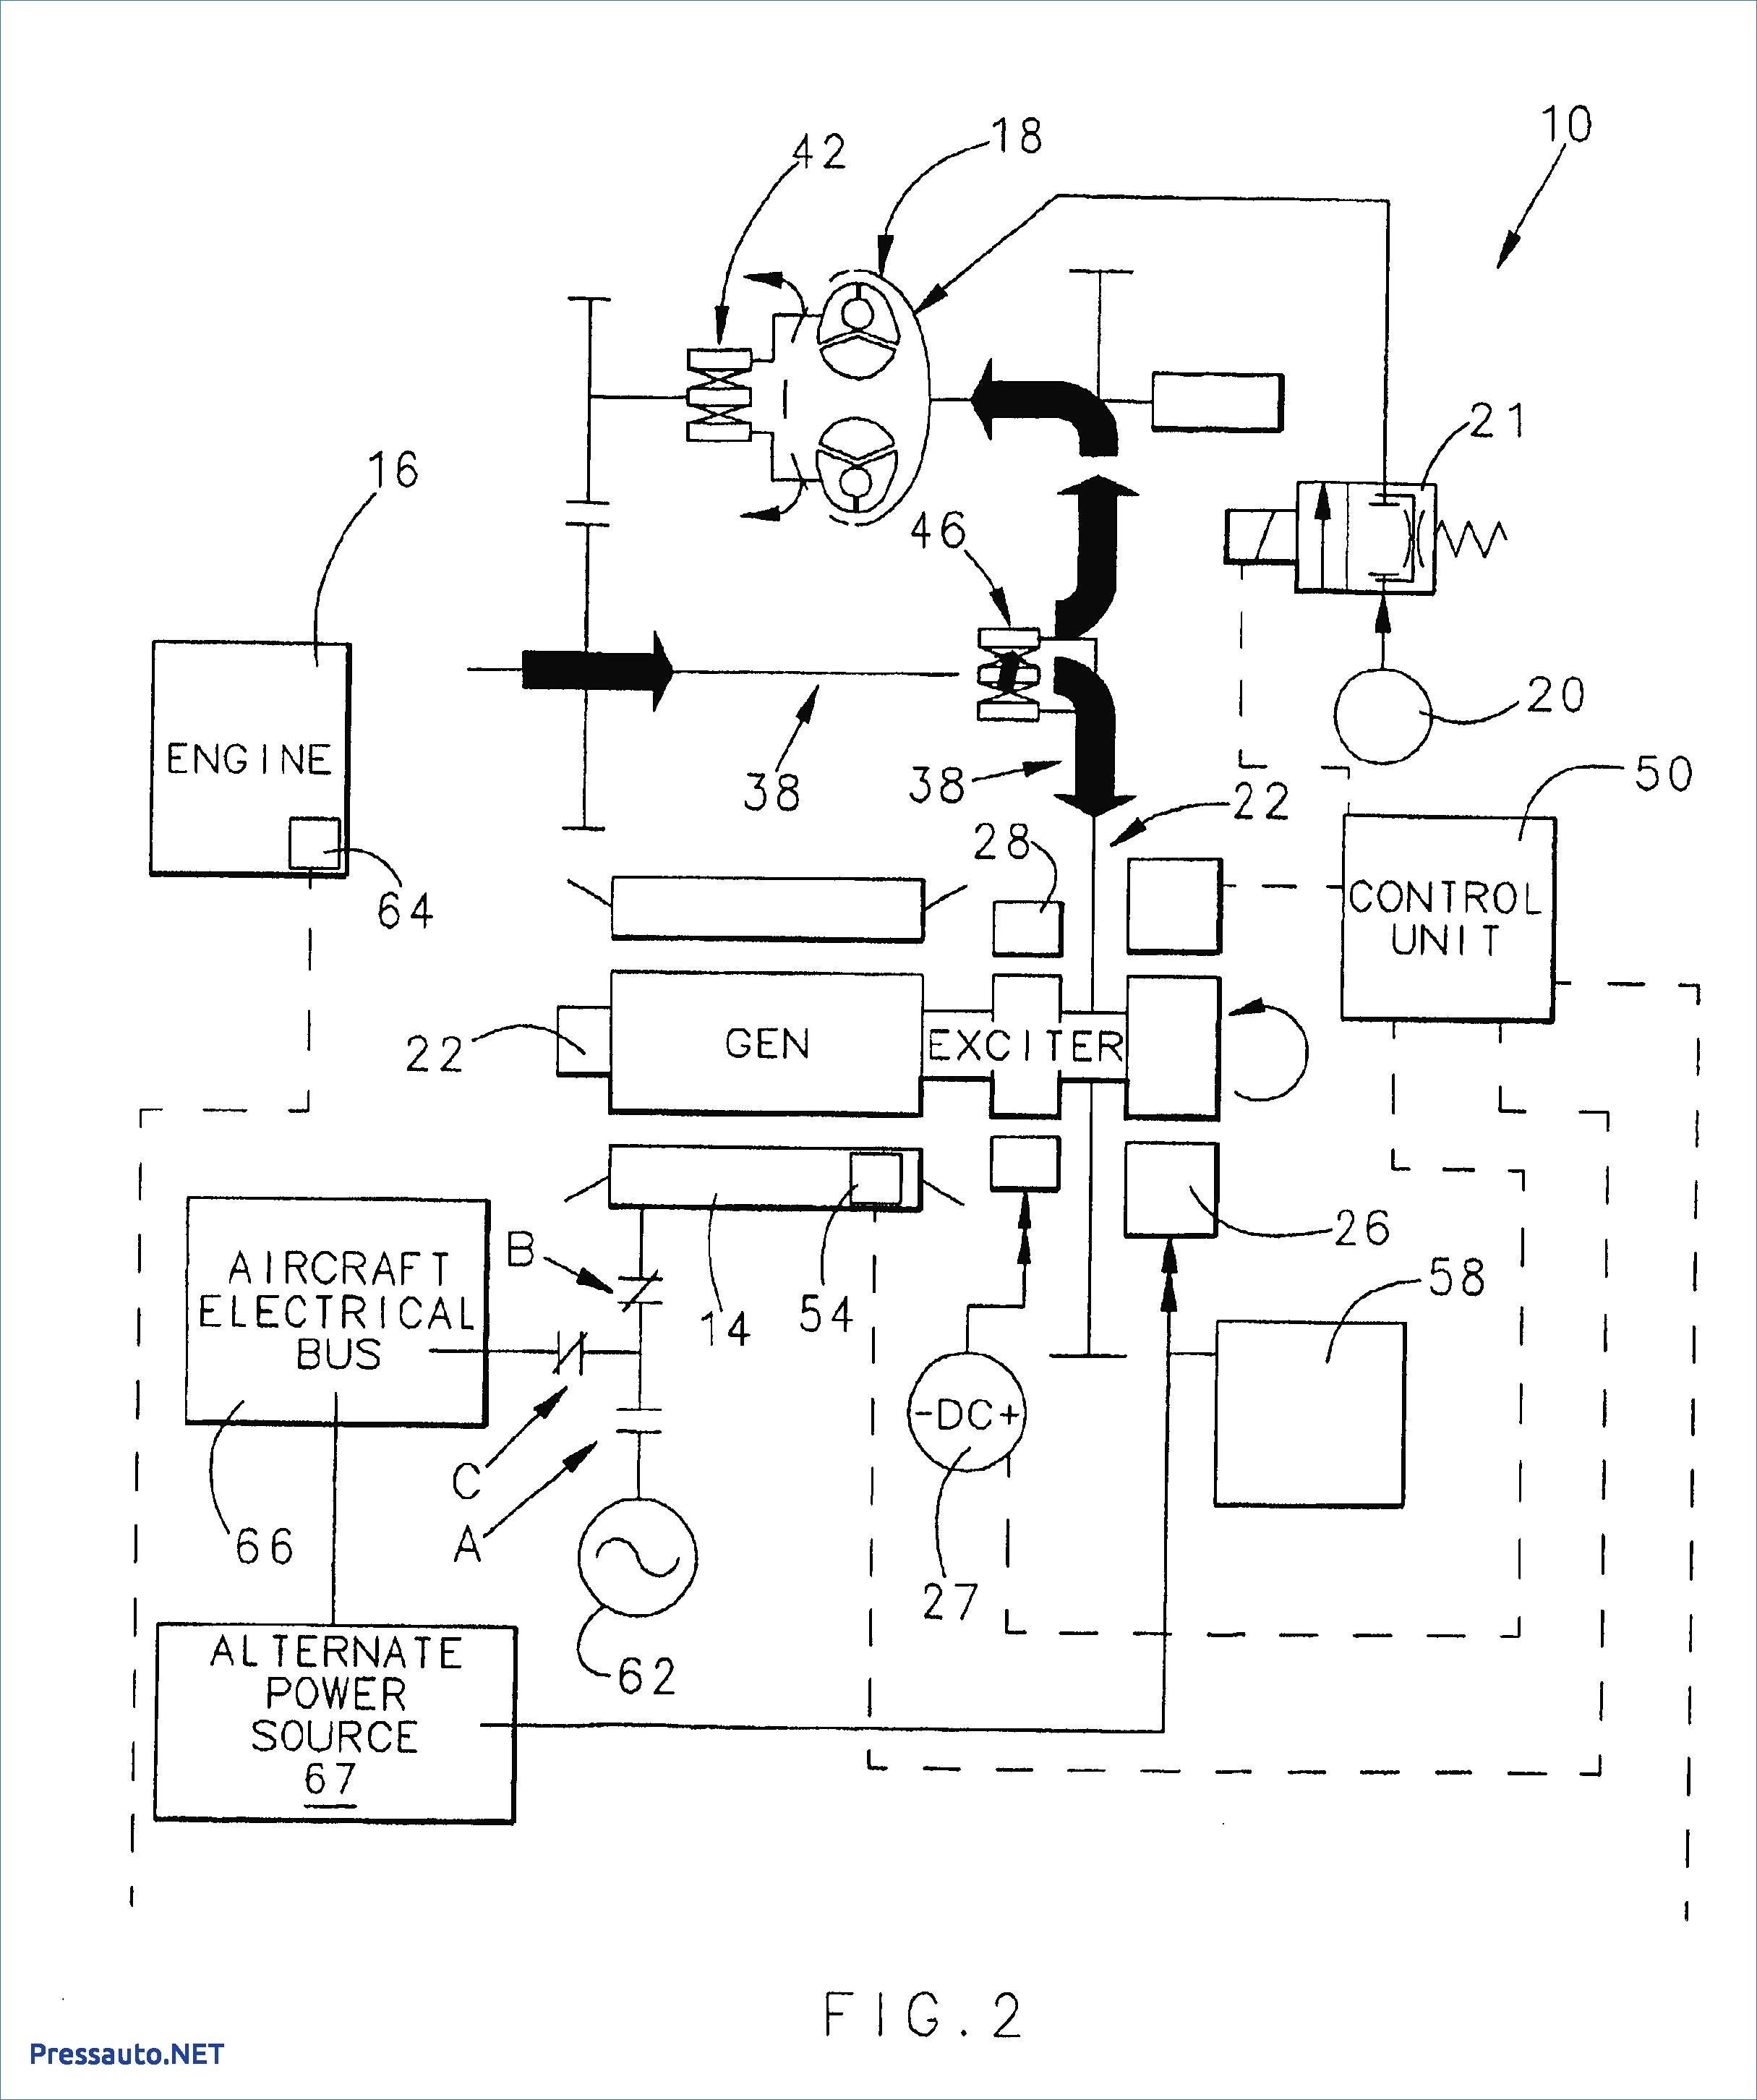 50dn alternator diagram wiring diagram forward 50dn alternator diagram [ 2430 x 2904 Pixel ]